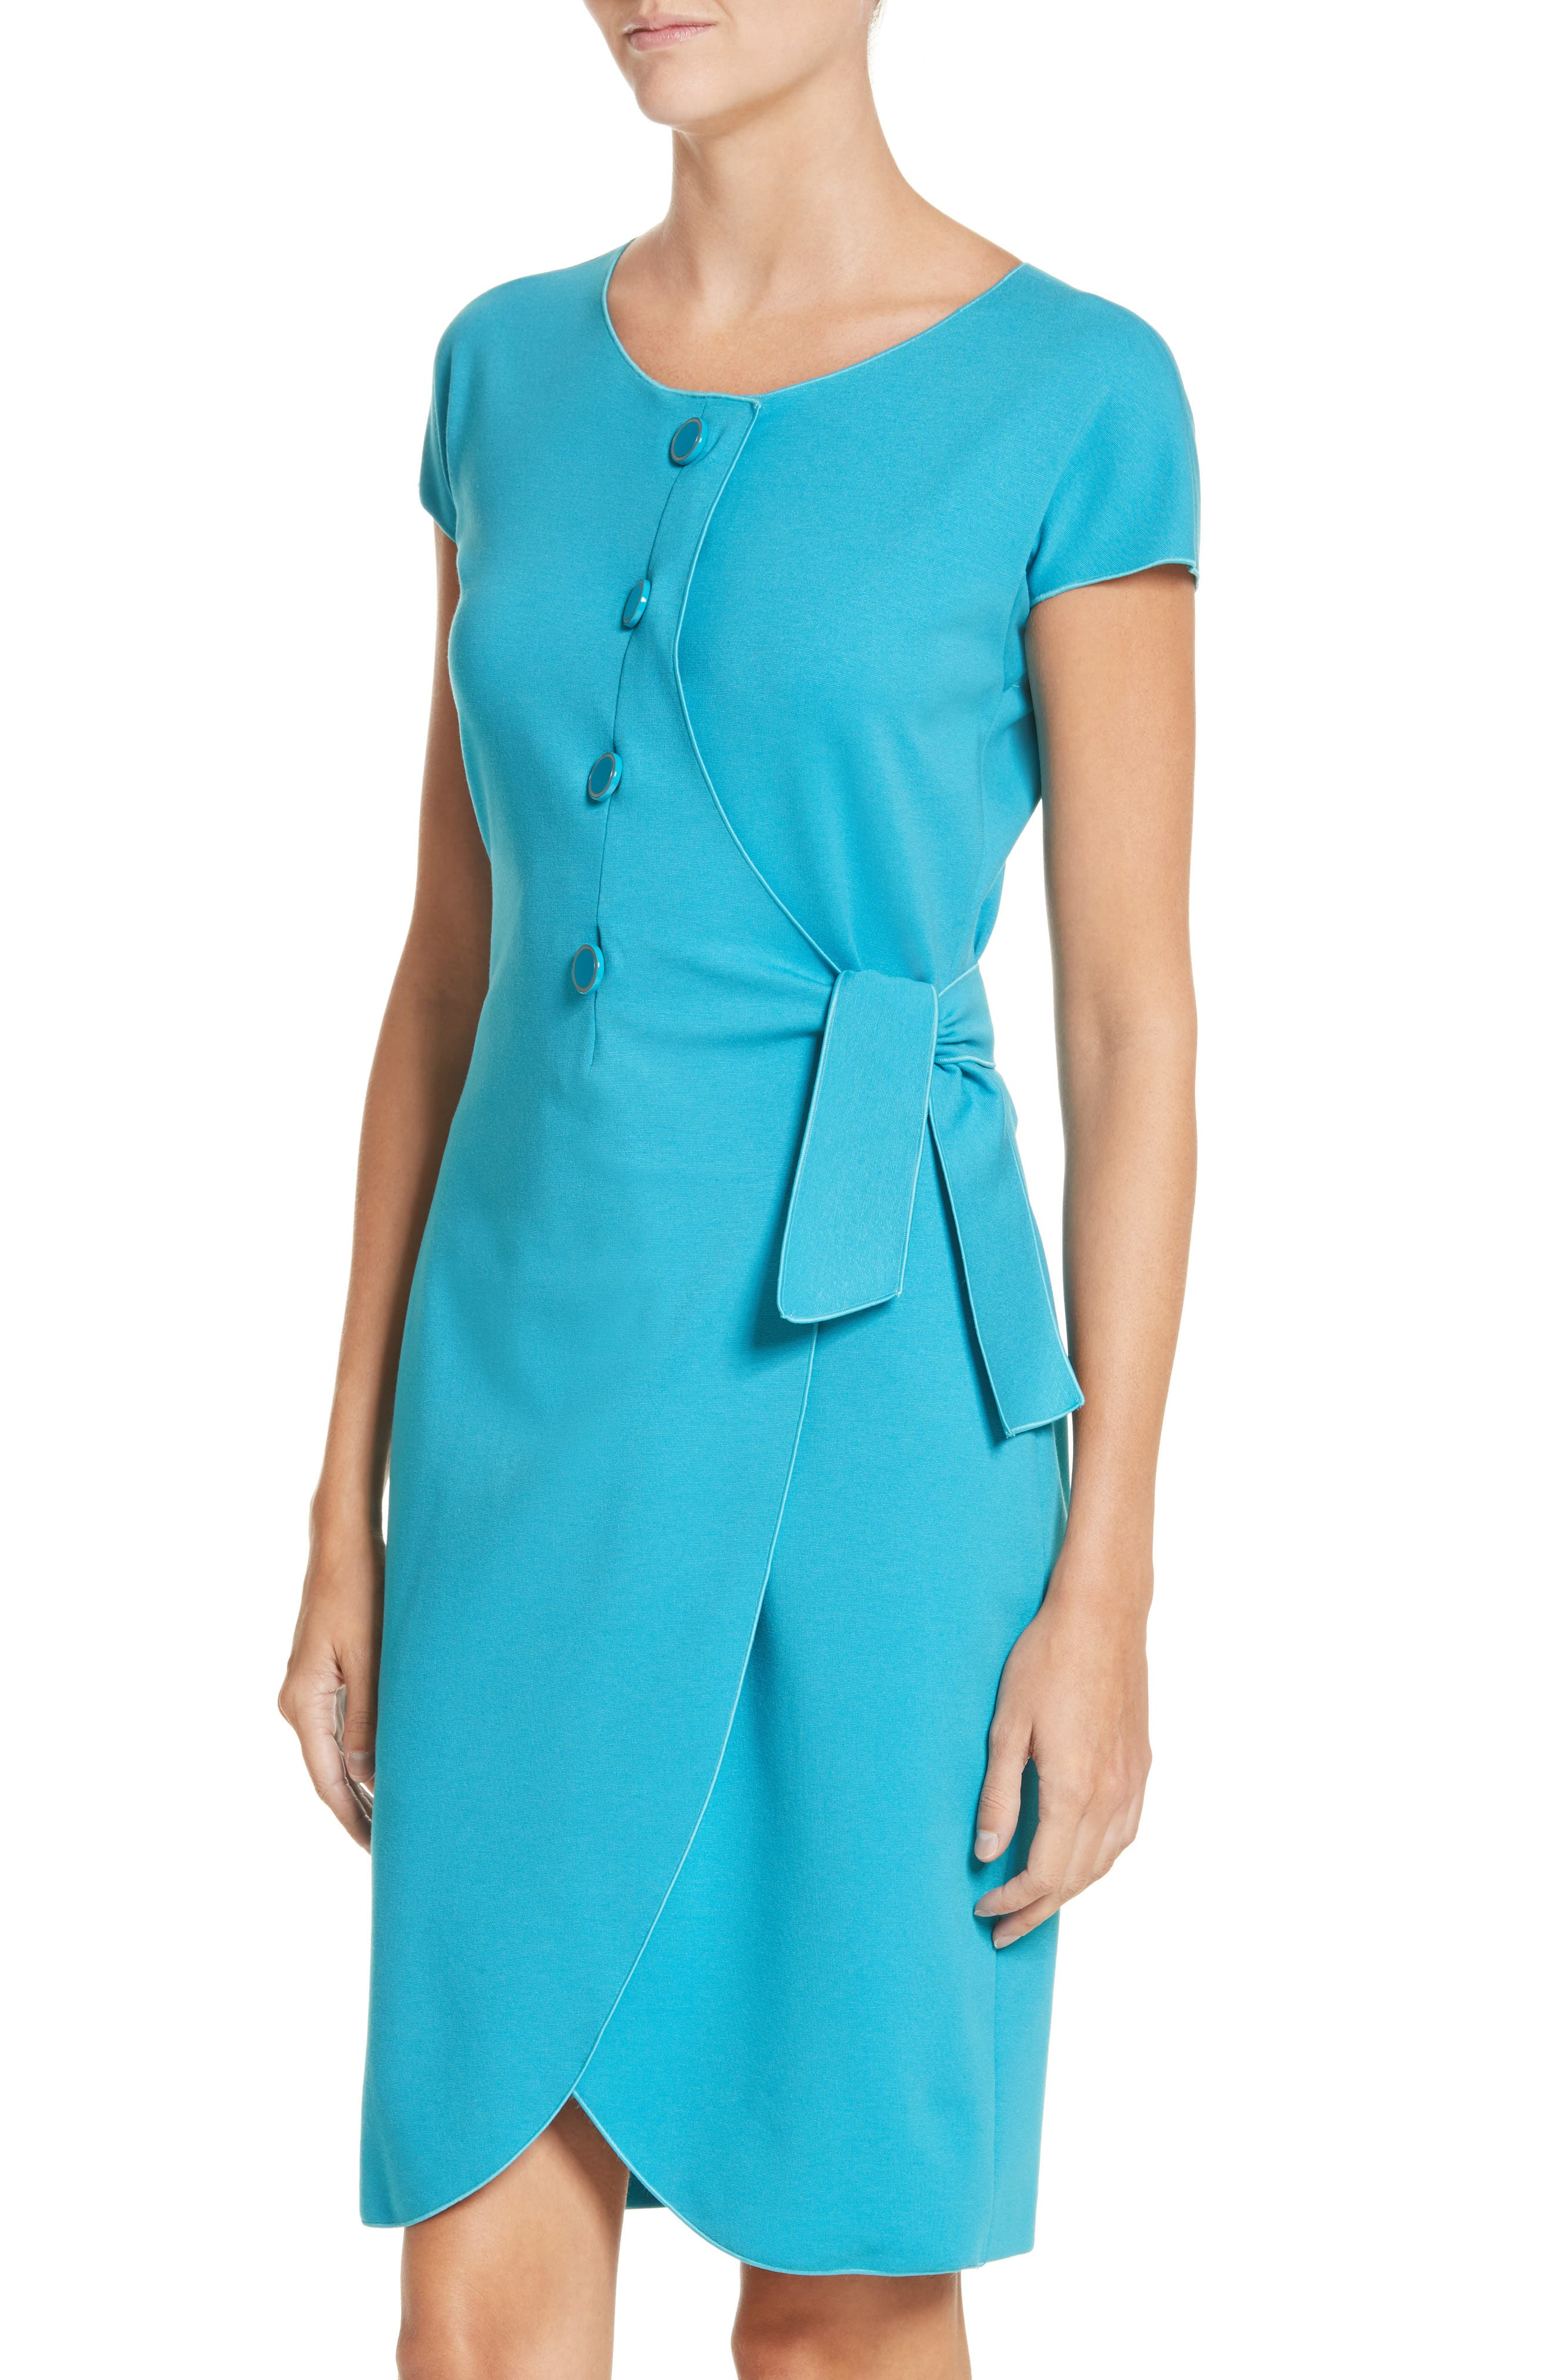 Knotted Wrap Skirt Dress,                             Alternate thumbnail 4, color,                             Solid Turquoise/ Aqua